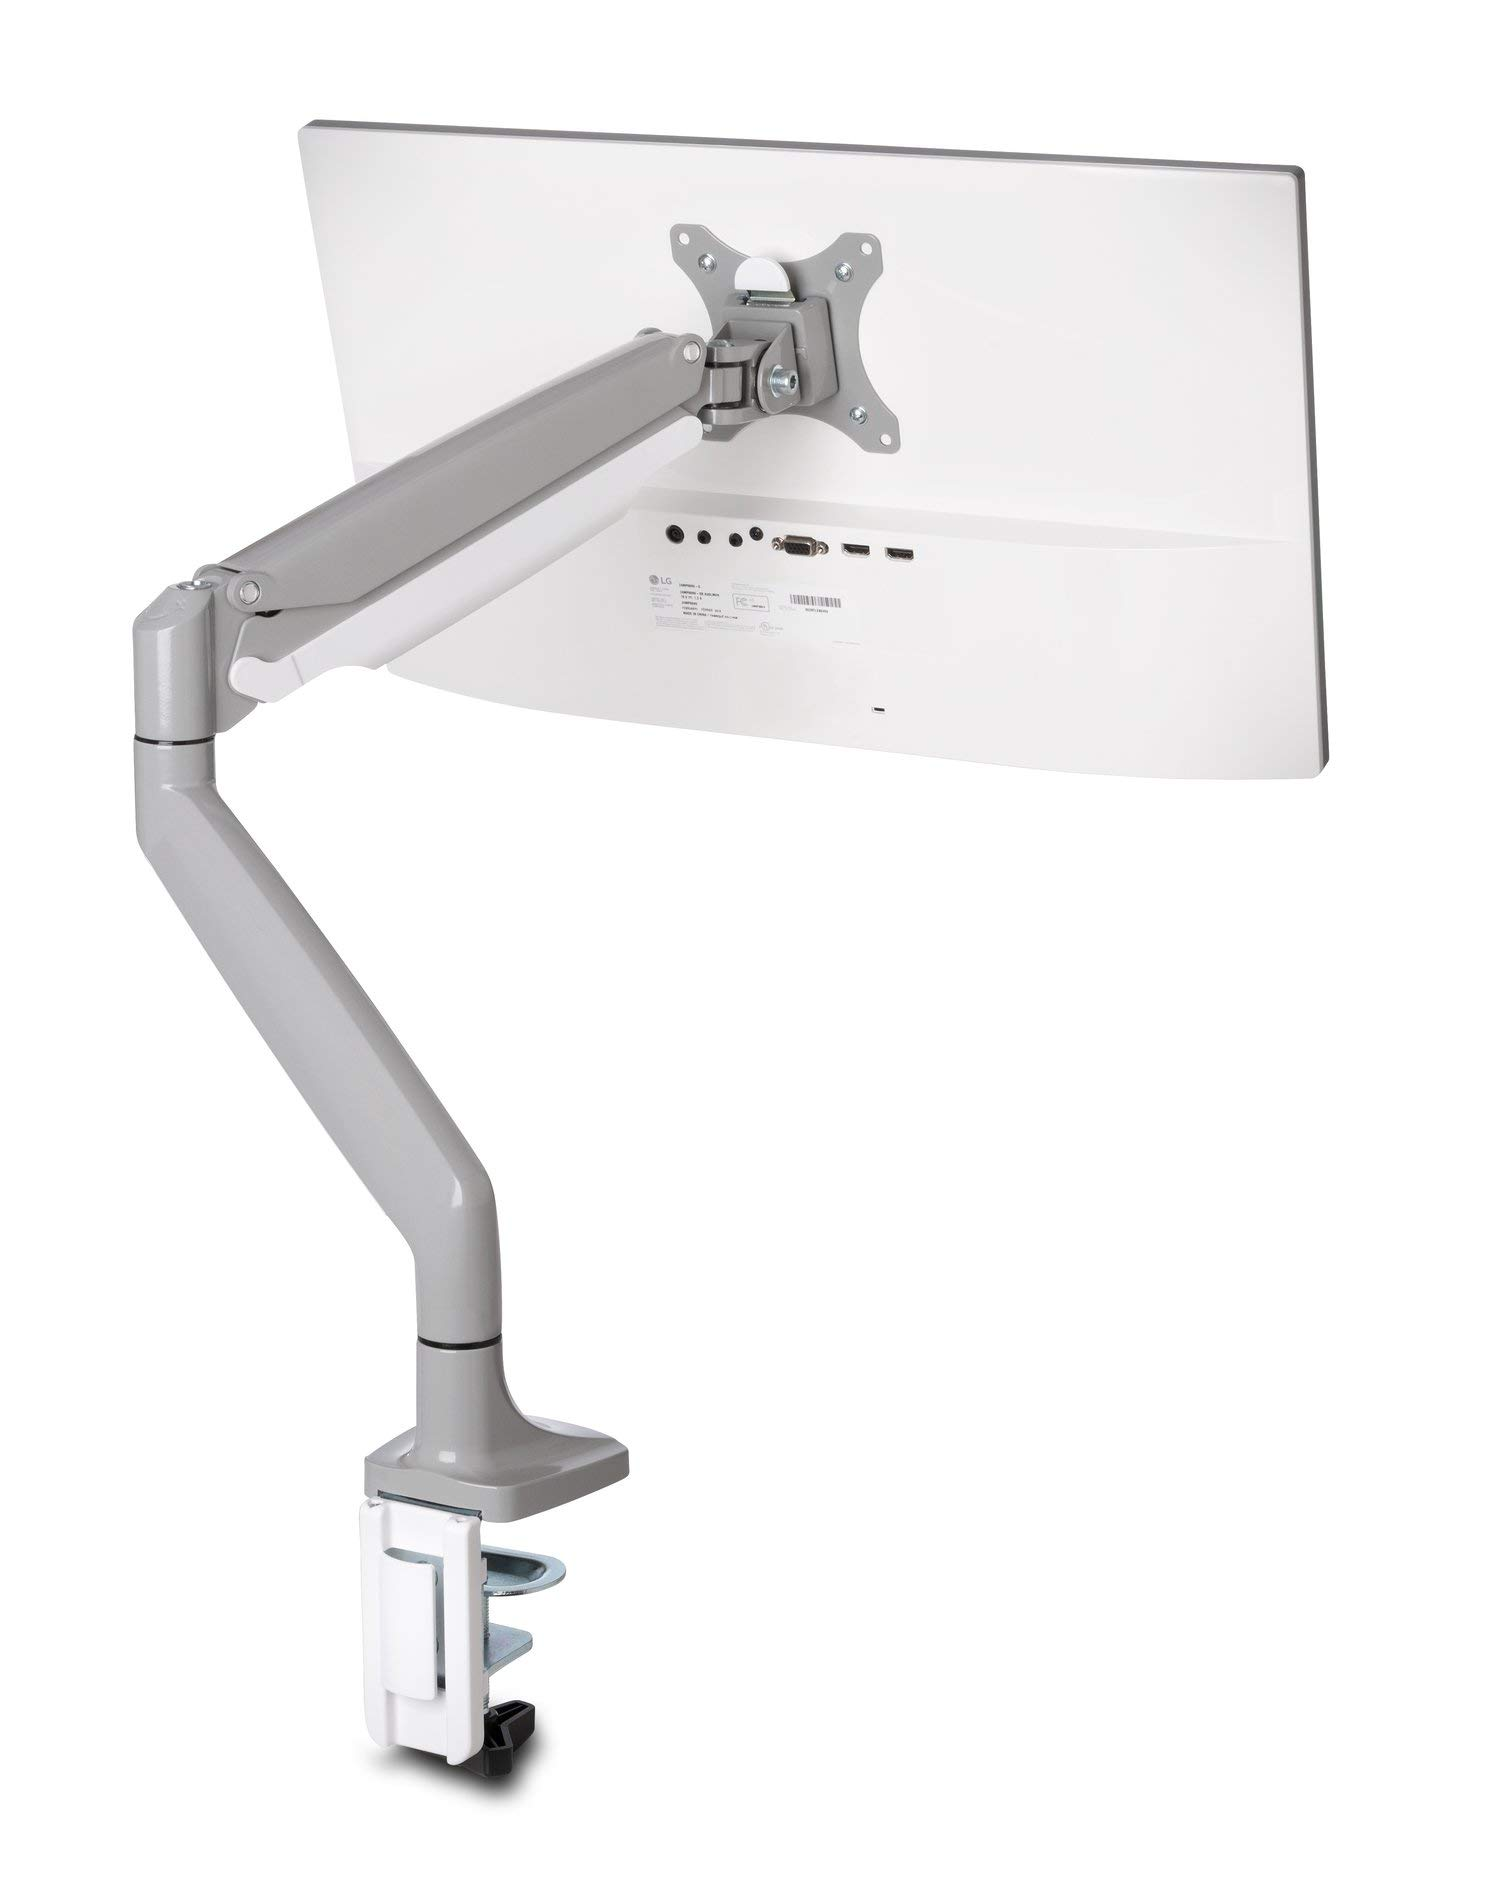 Kensington K55470WW Monitor Arm One Touch Height Adjustable, Single Monitor,White